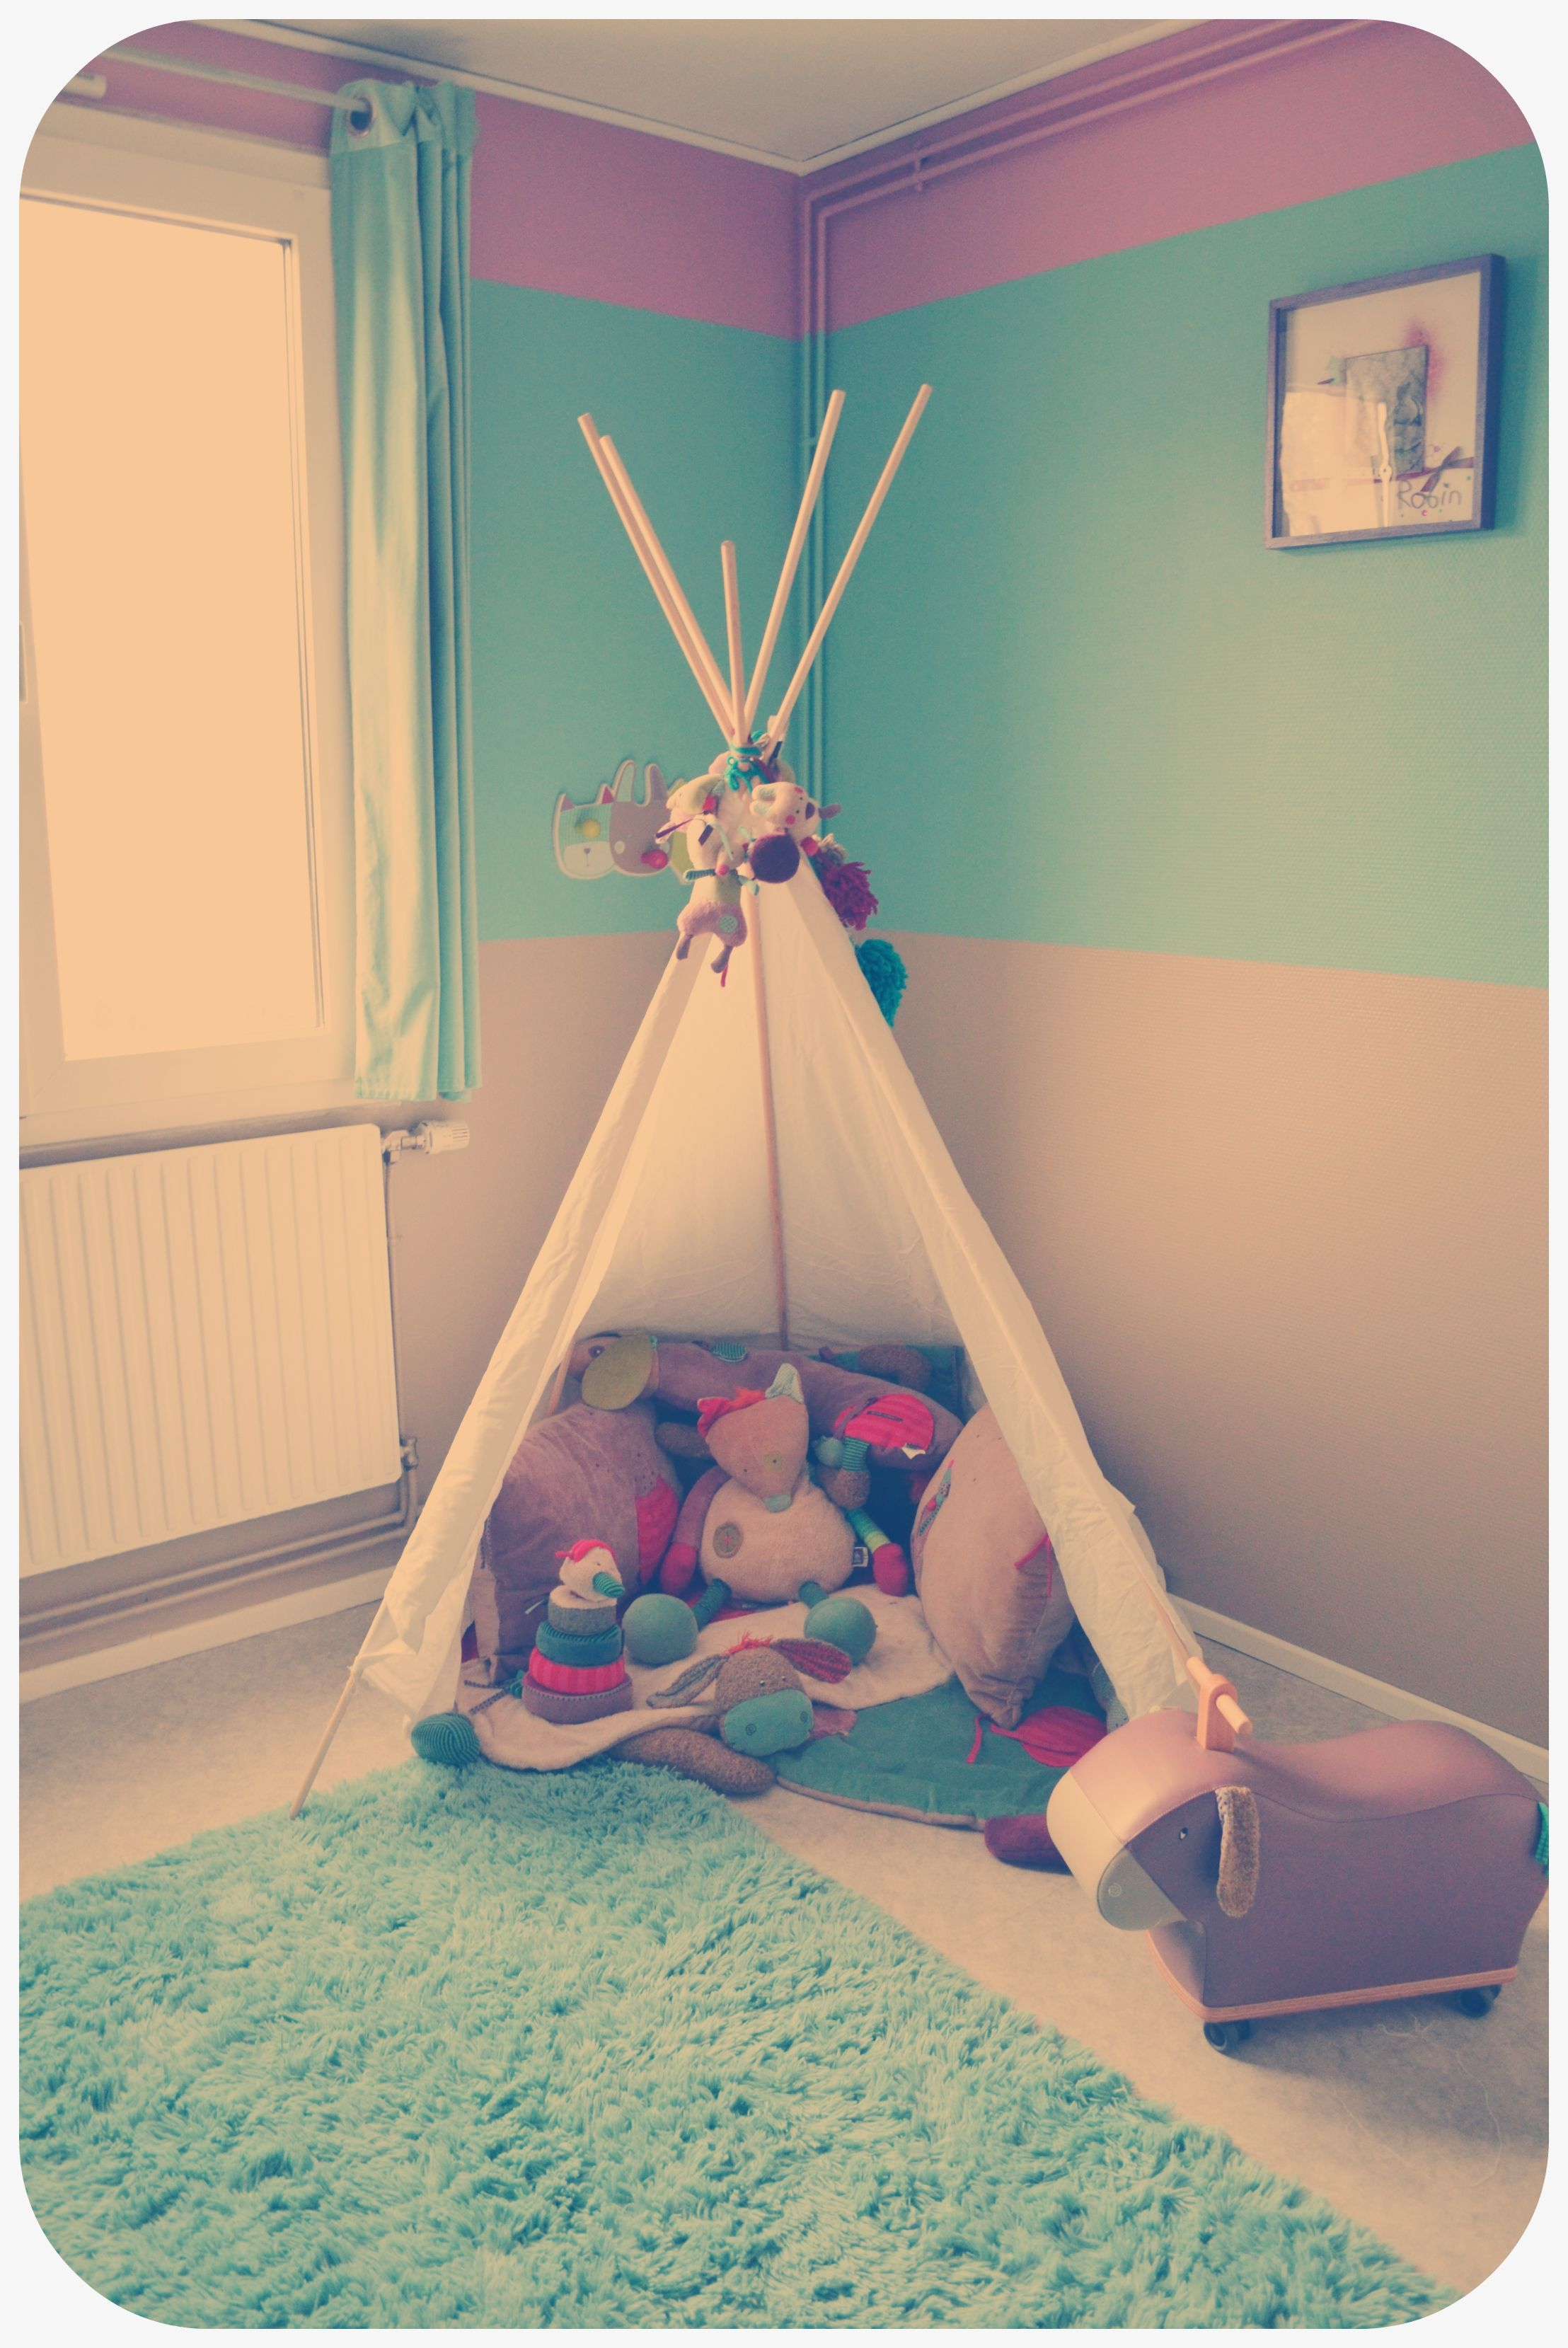 Chambre de robin tipi moulin roty les jolis pas beaux for Chambre calisson moulin roty